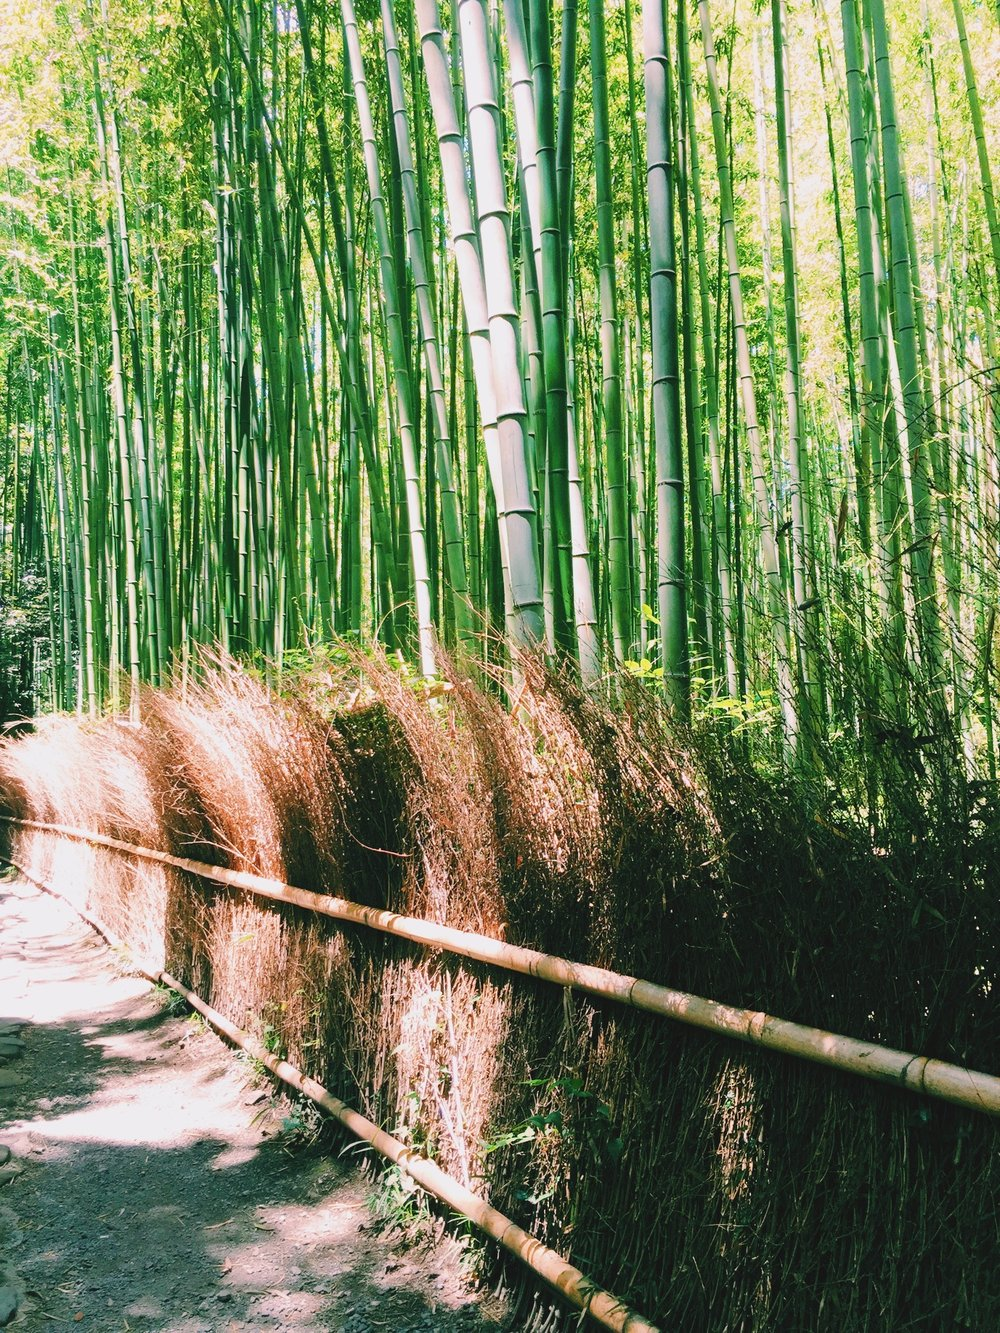 Bamboo Forest, Travel Guide to Kyoto, Japan